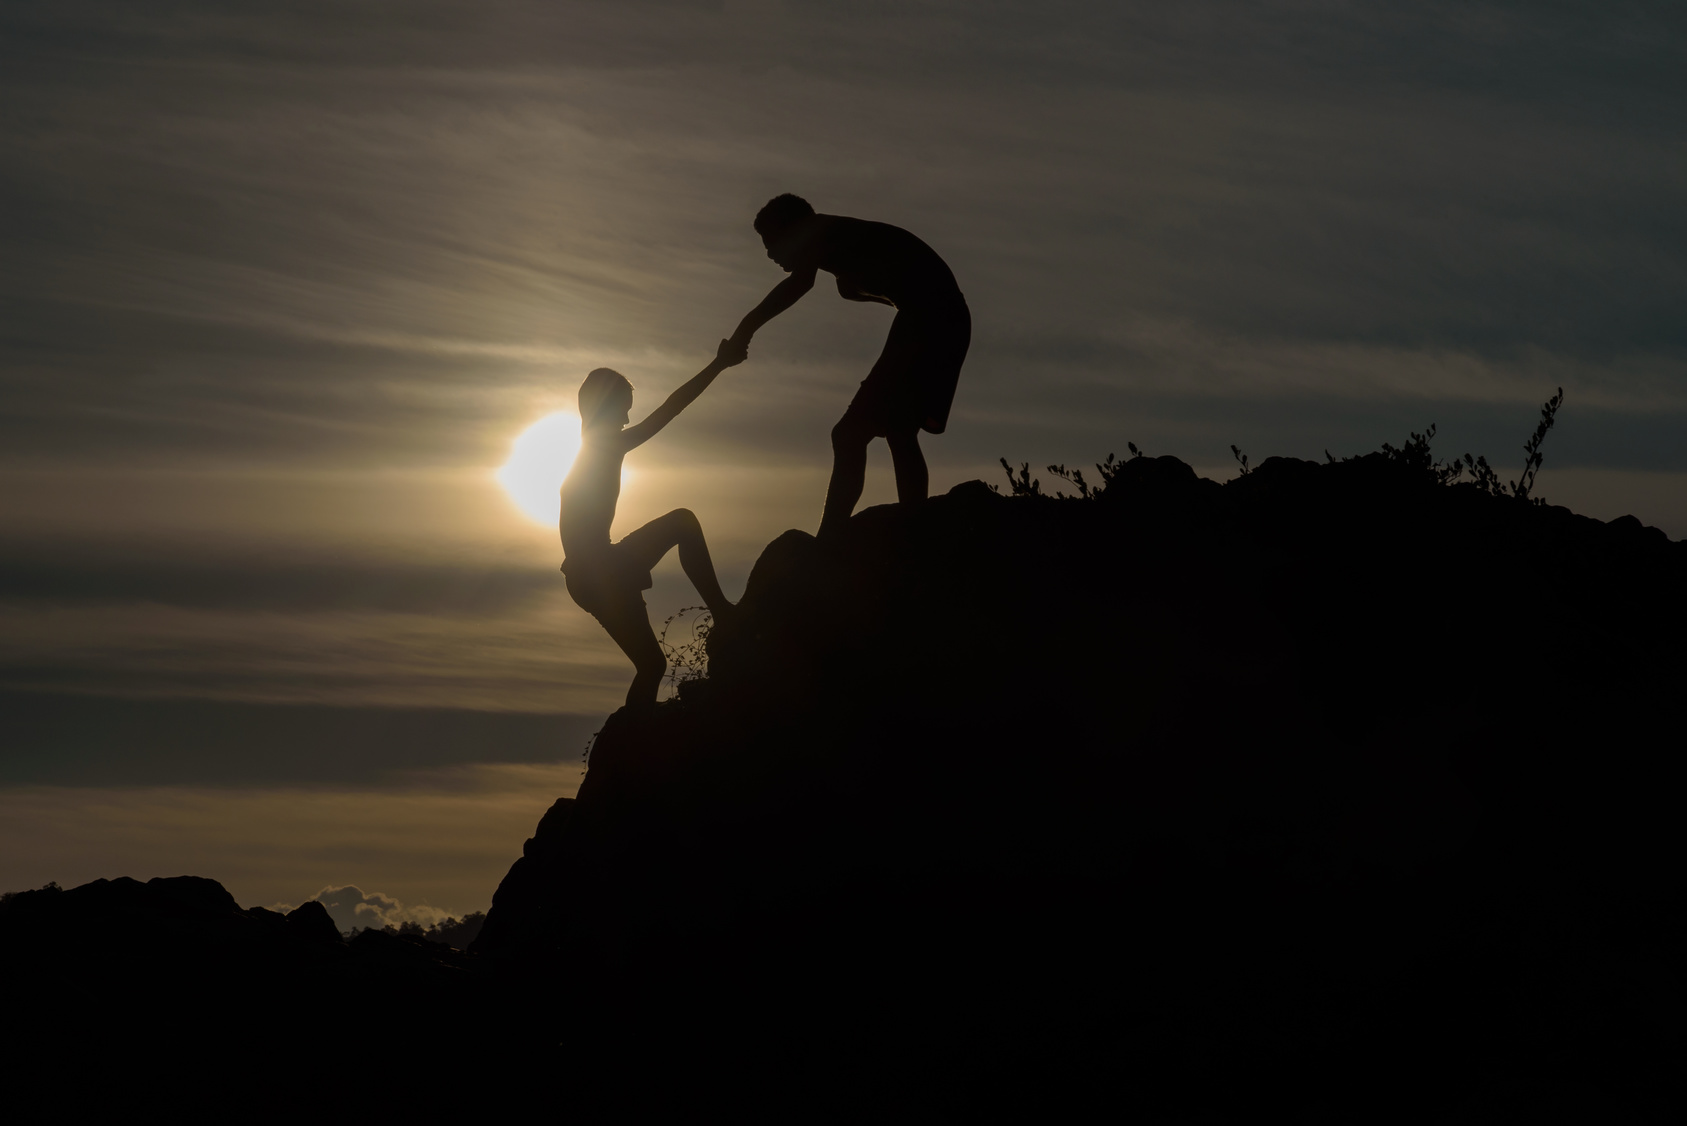 Silhouette of two boys helped pull together climbing